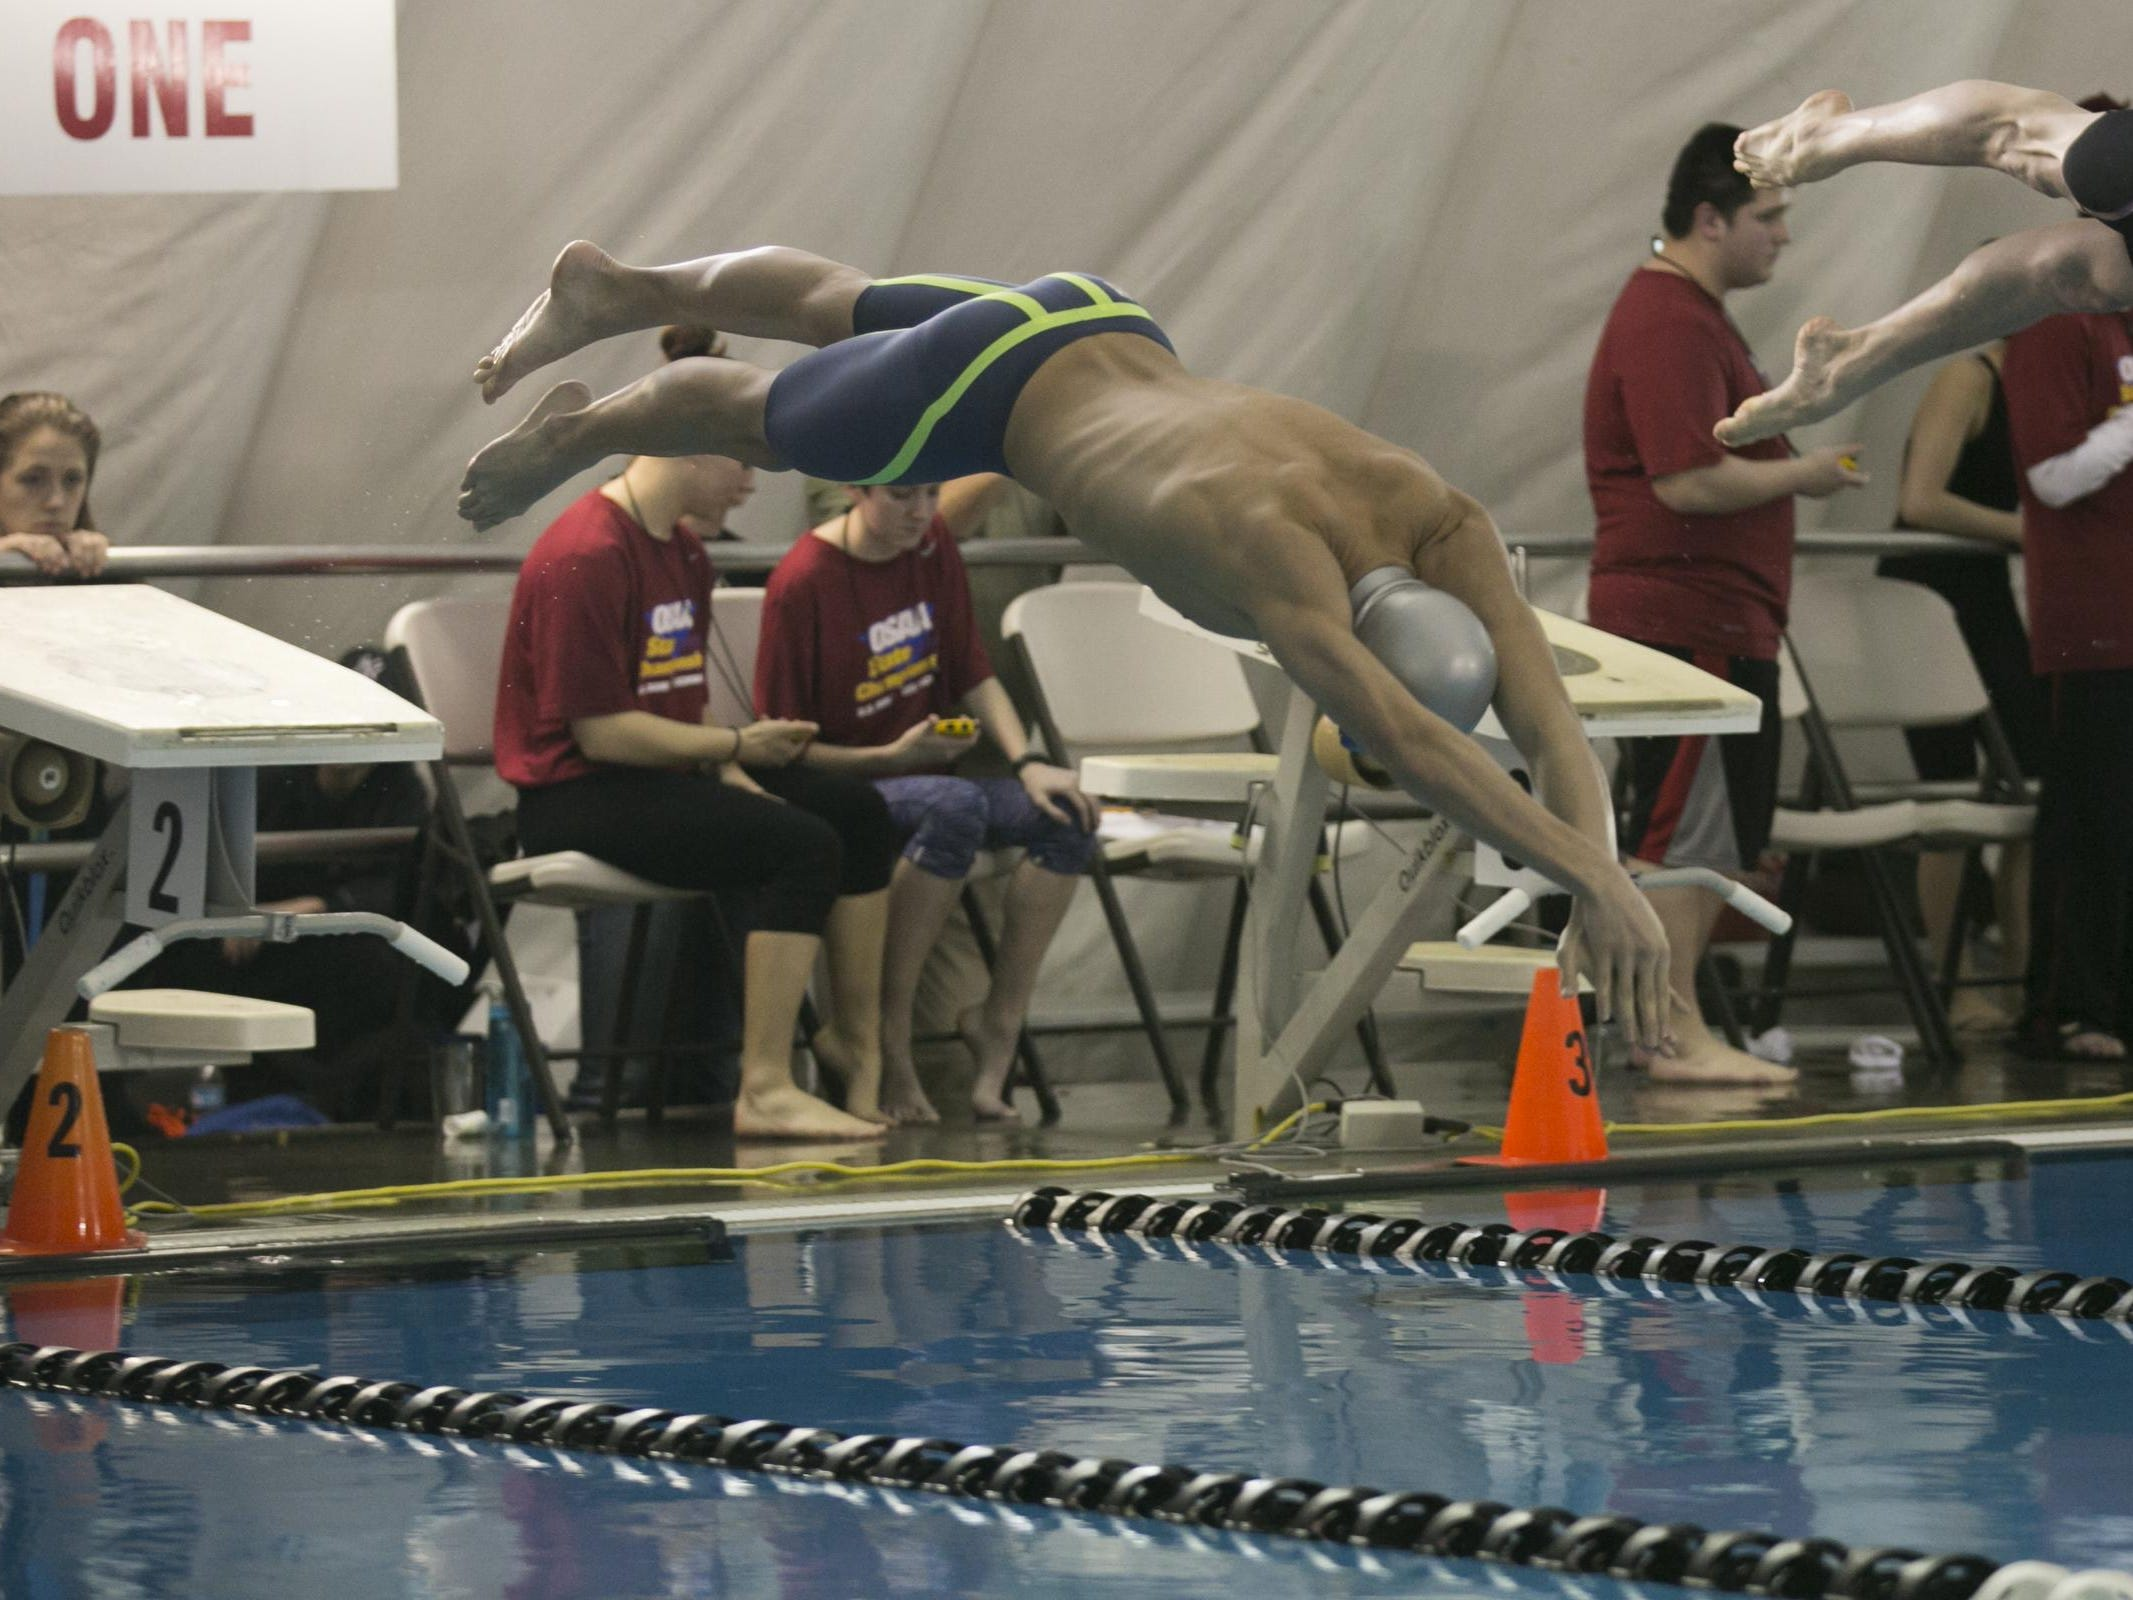 West Salem junior Micah Masei swims the boys 200 medley relay at the OSAA Swimming State Championships at Mount Hood Community College on Saturday, Feb. 20, 2016.